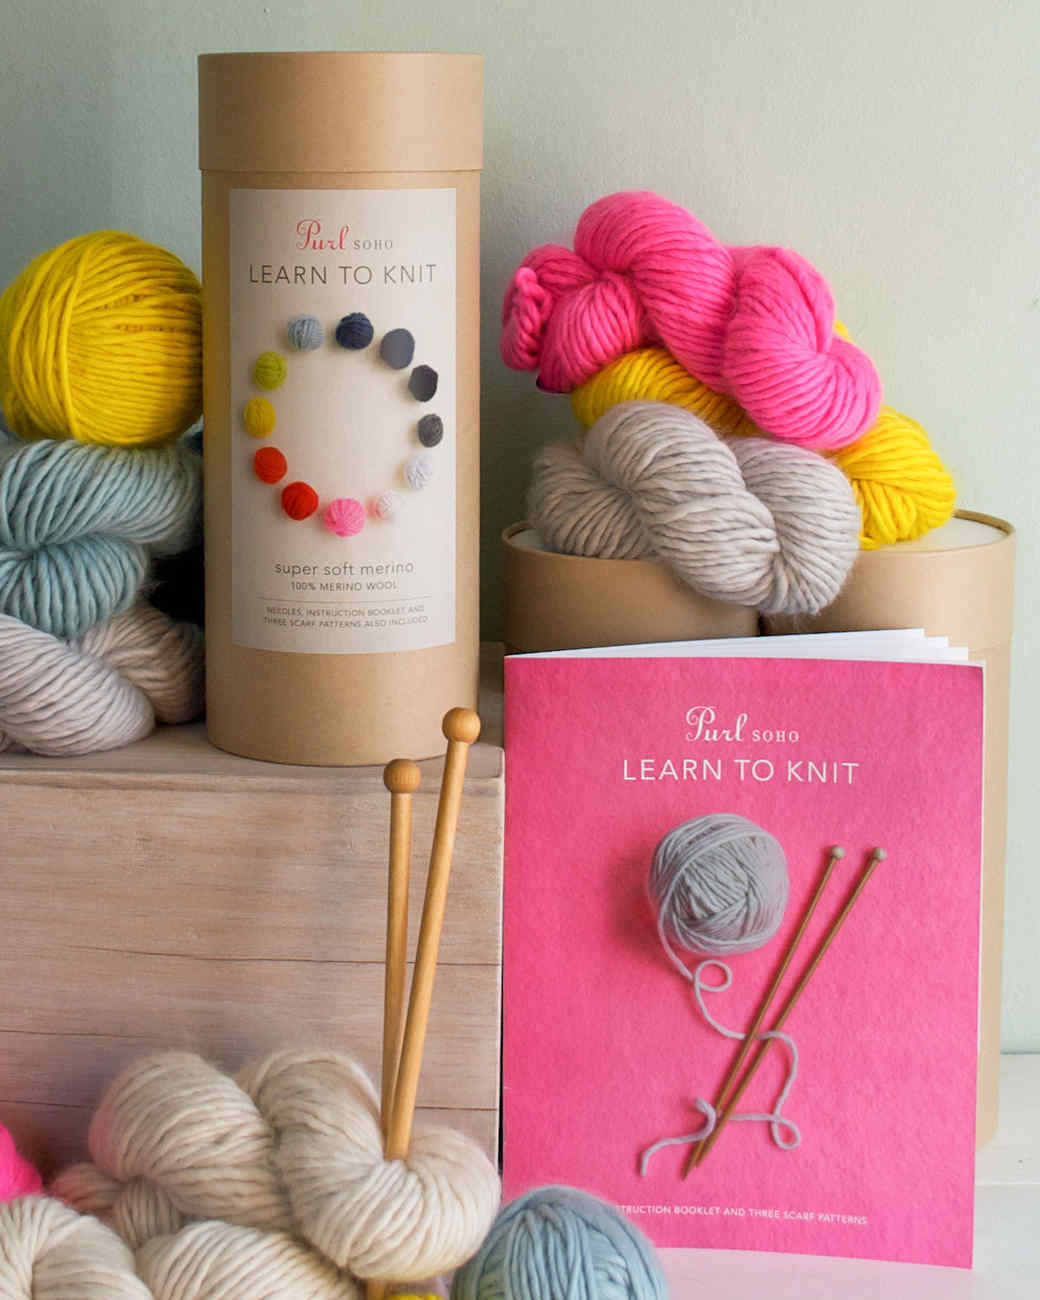 purl-soho-learn-to-knit-0714.jpg